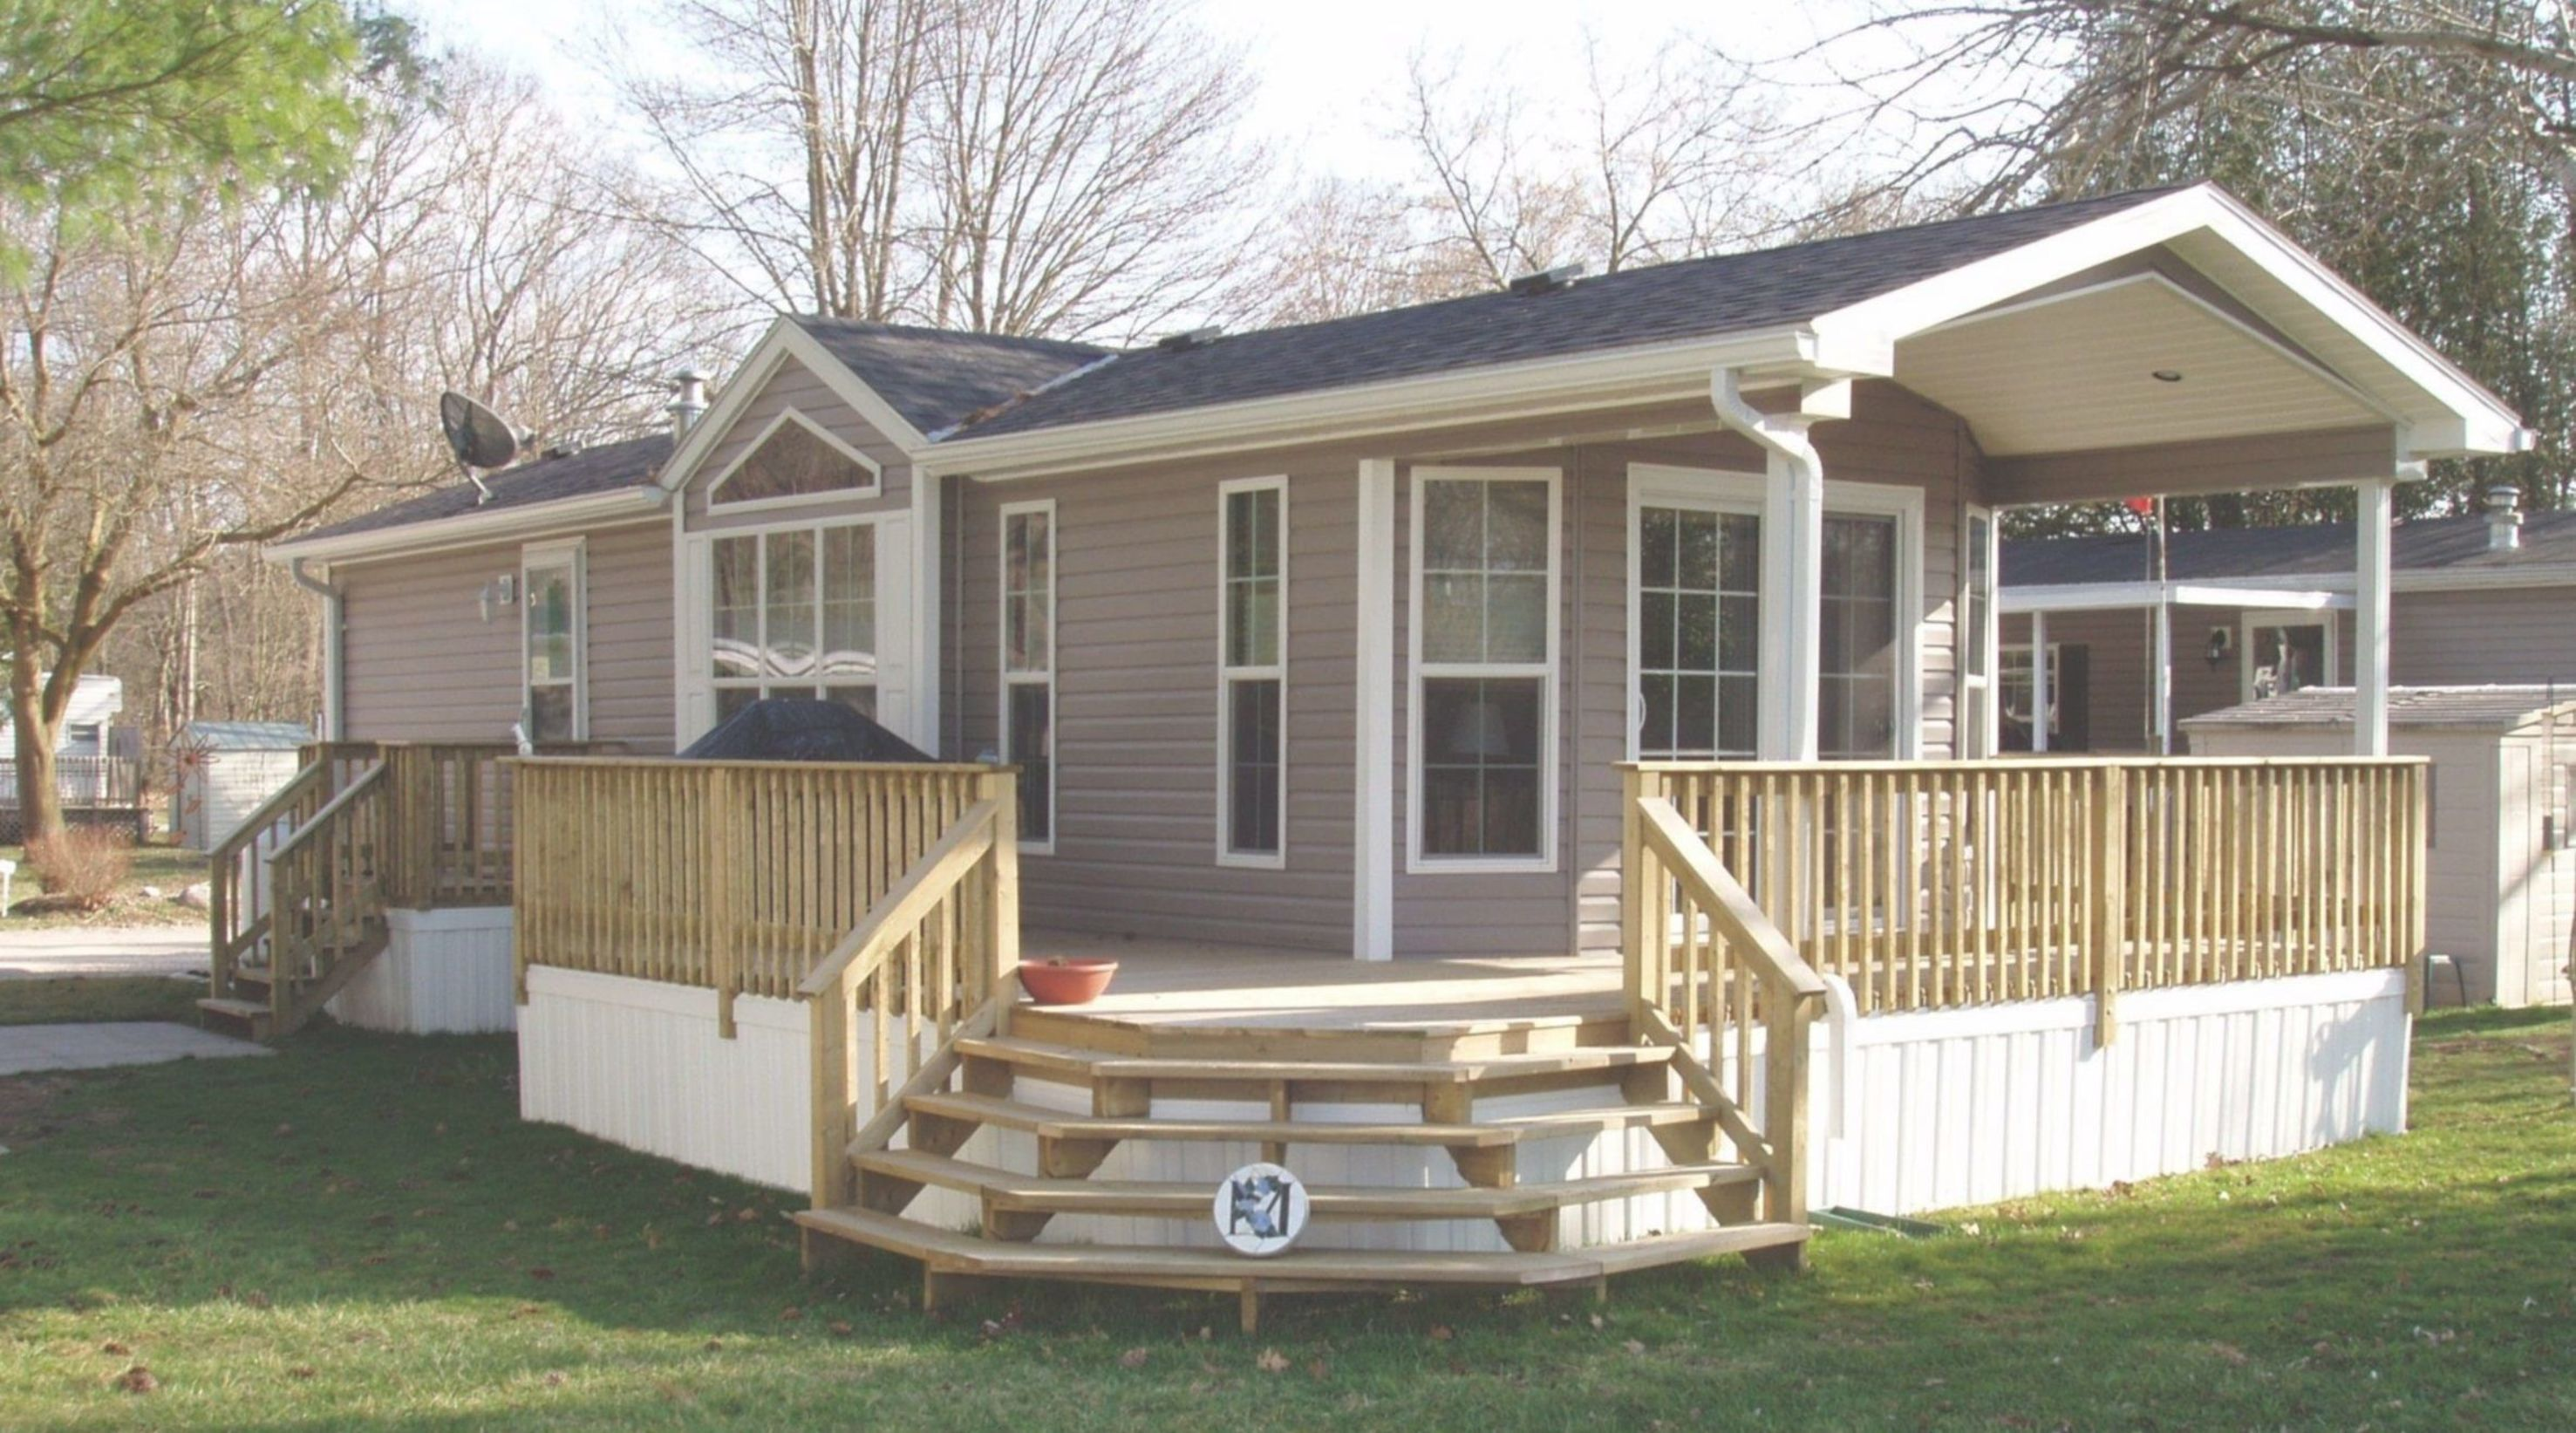 Pin By Steve On Mobile Home Decor Board Manufactured Home Porch Mobile Home Porch Mobile Home Deck